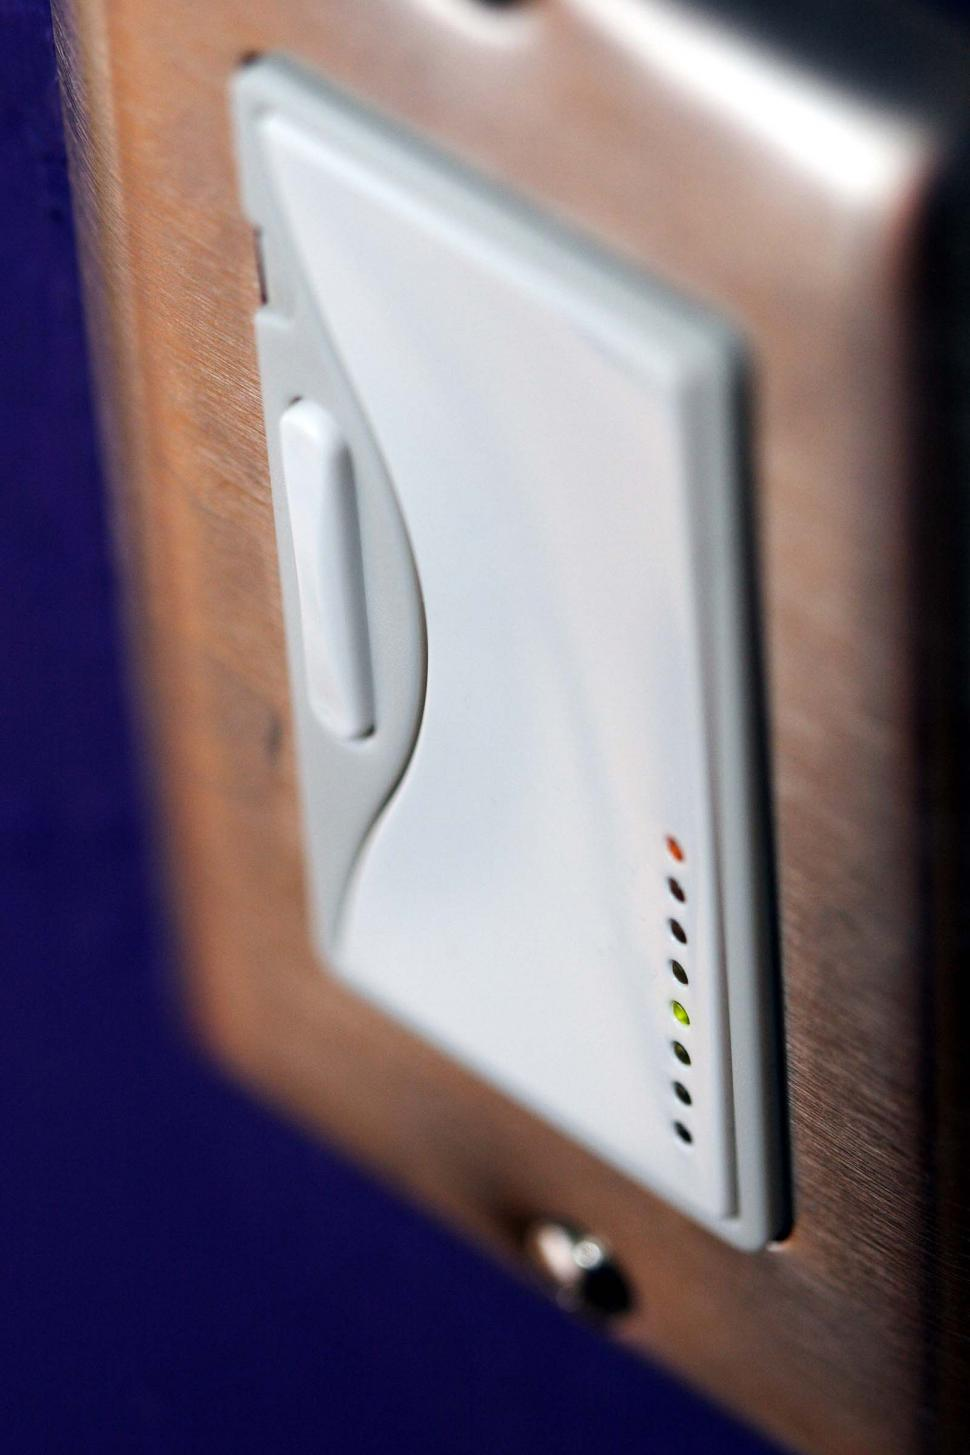 Download Free Stock HD Photo of Modern light switch Online